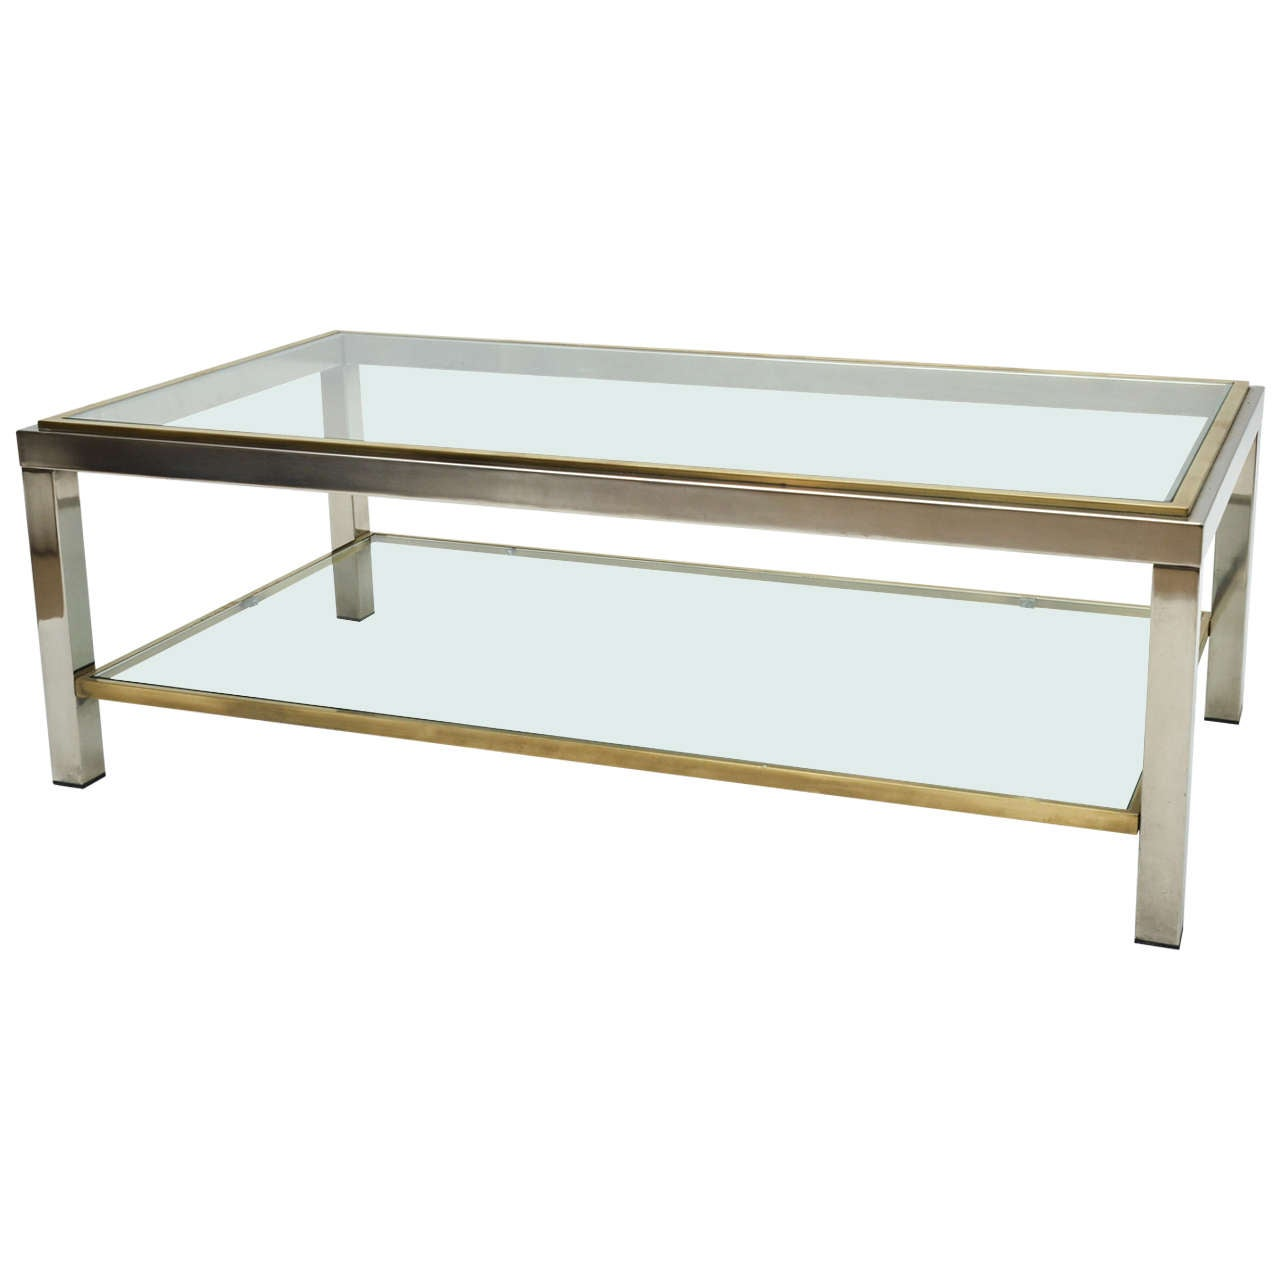 Chrome Glass Coffee Table The Best Inspiration For